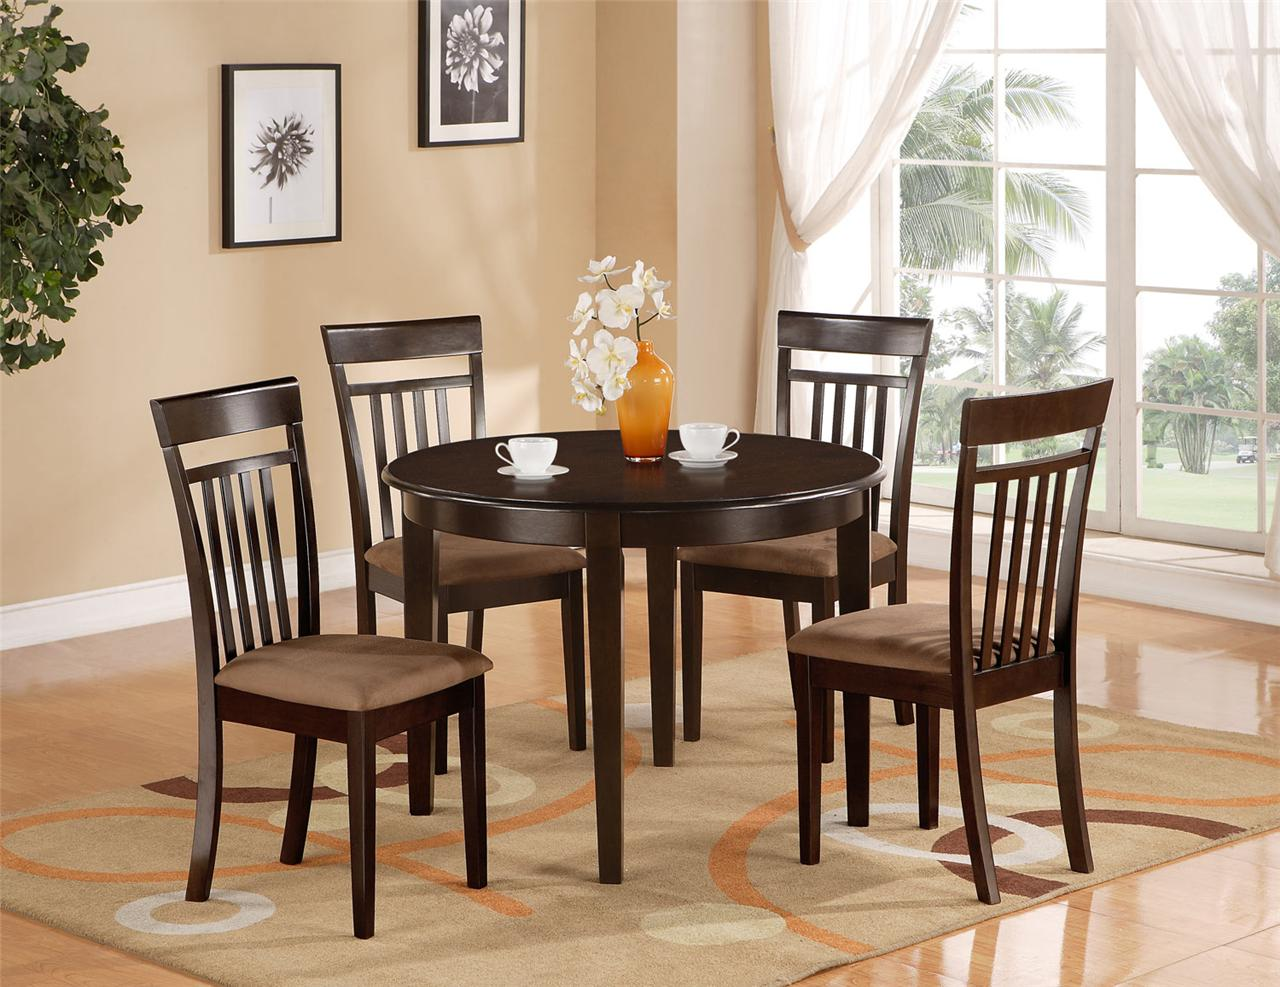 5 Pc Round Kitchen Dinette Table Amp 4 Chairs Cappuccino Ebay